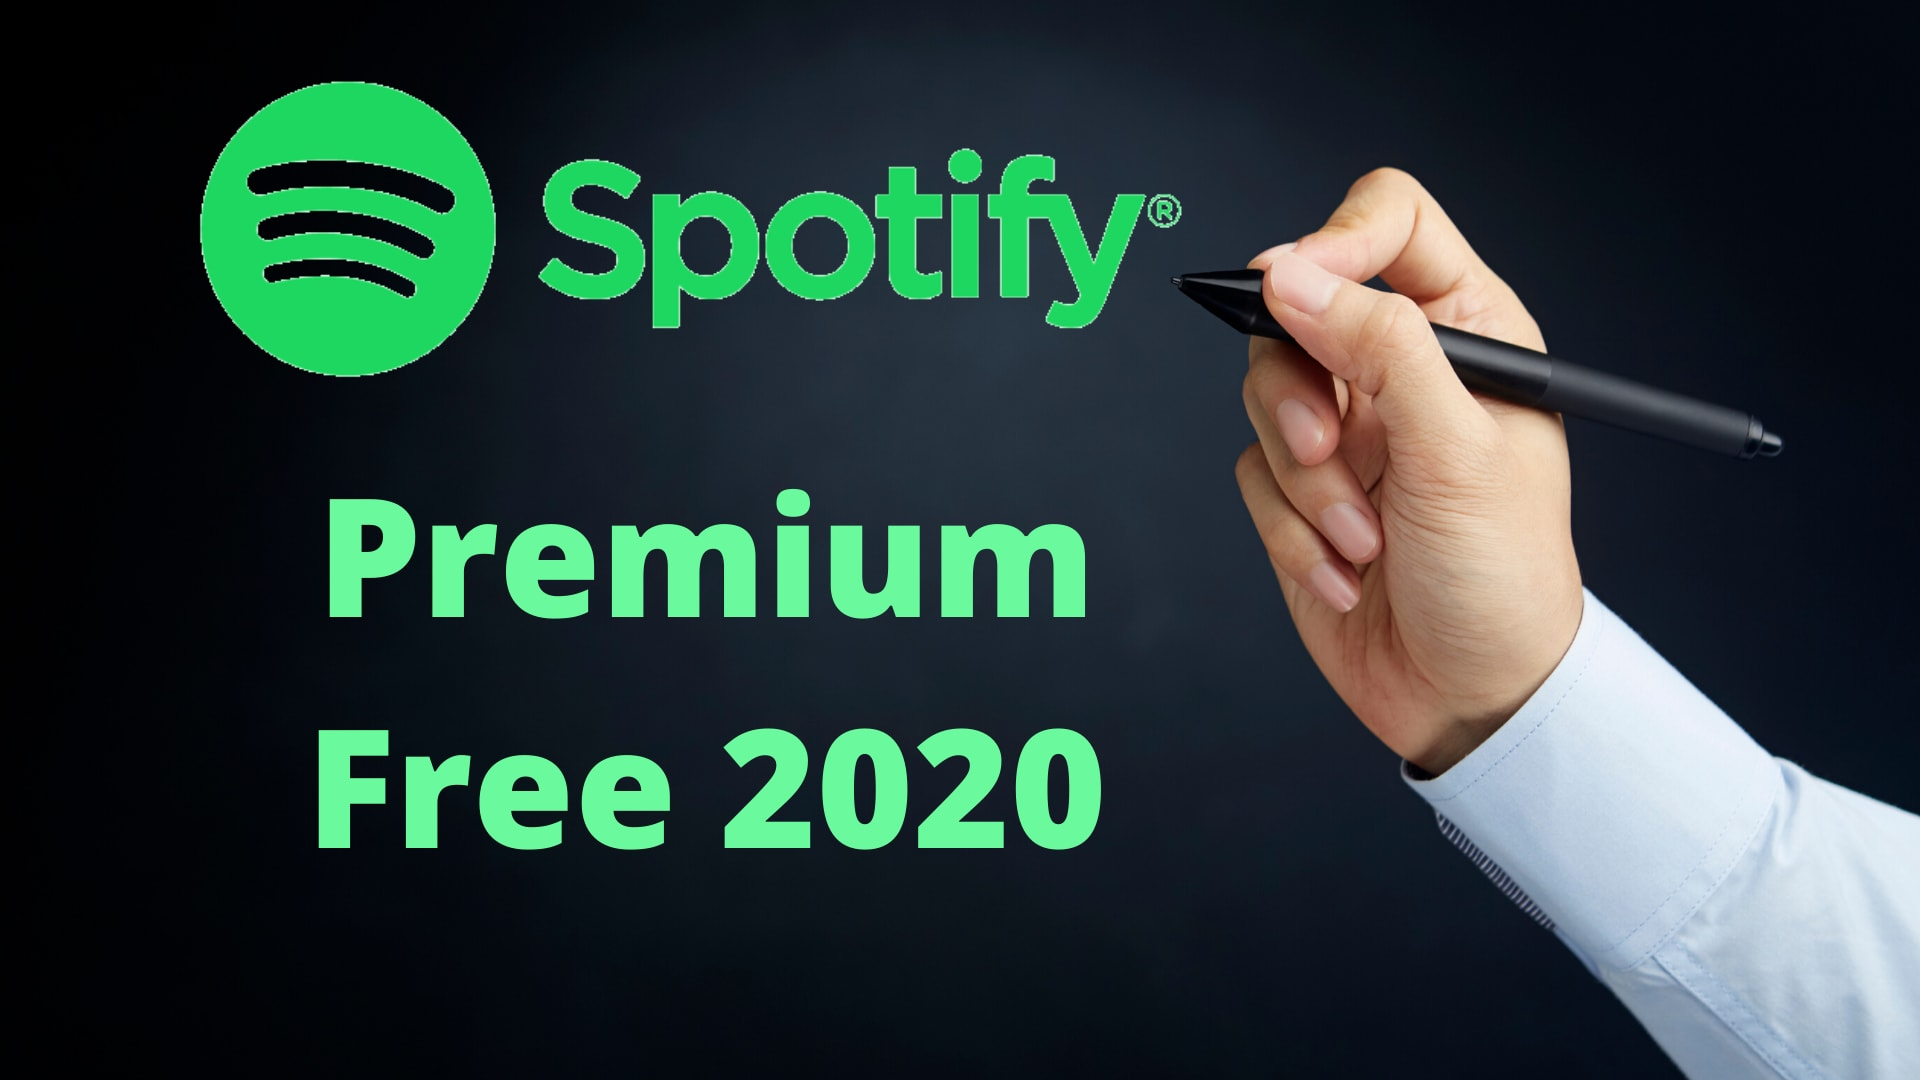 How to get Spotify Premium Free (100% Working Method) 2020